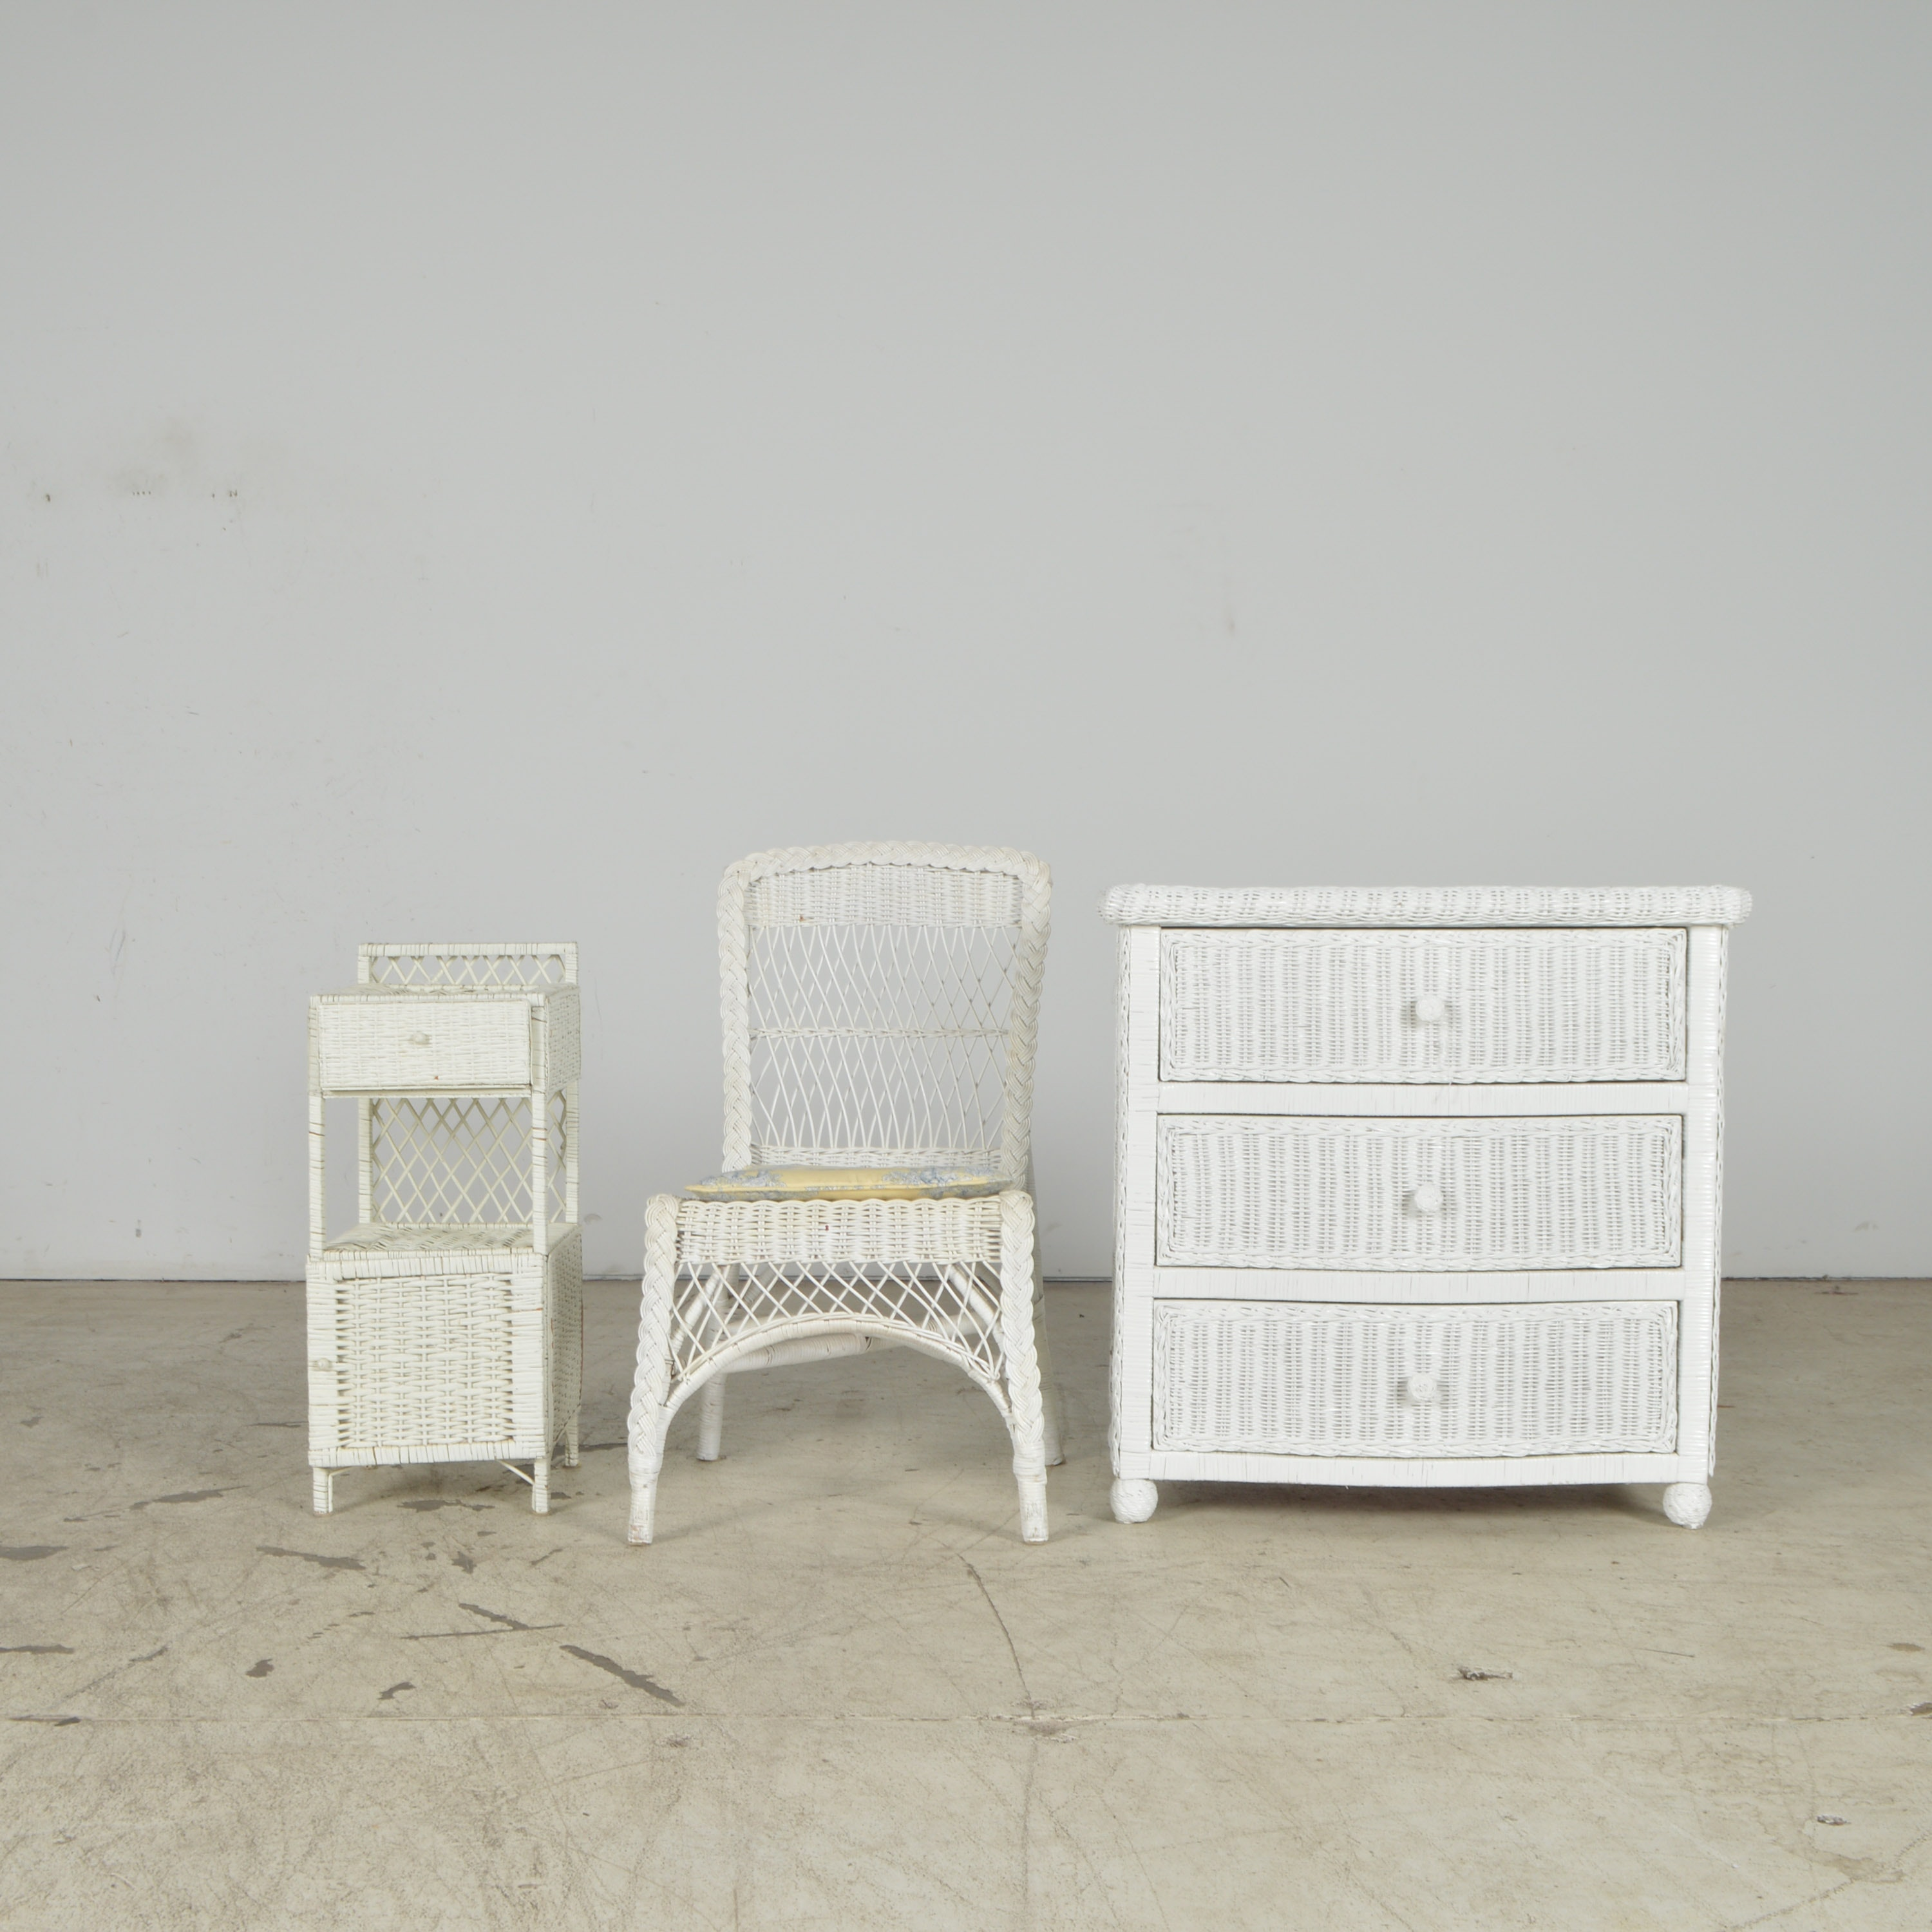 White Wicker Dresser, Chair, and End Table